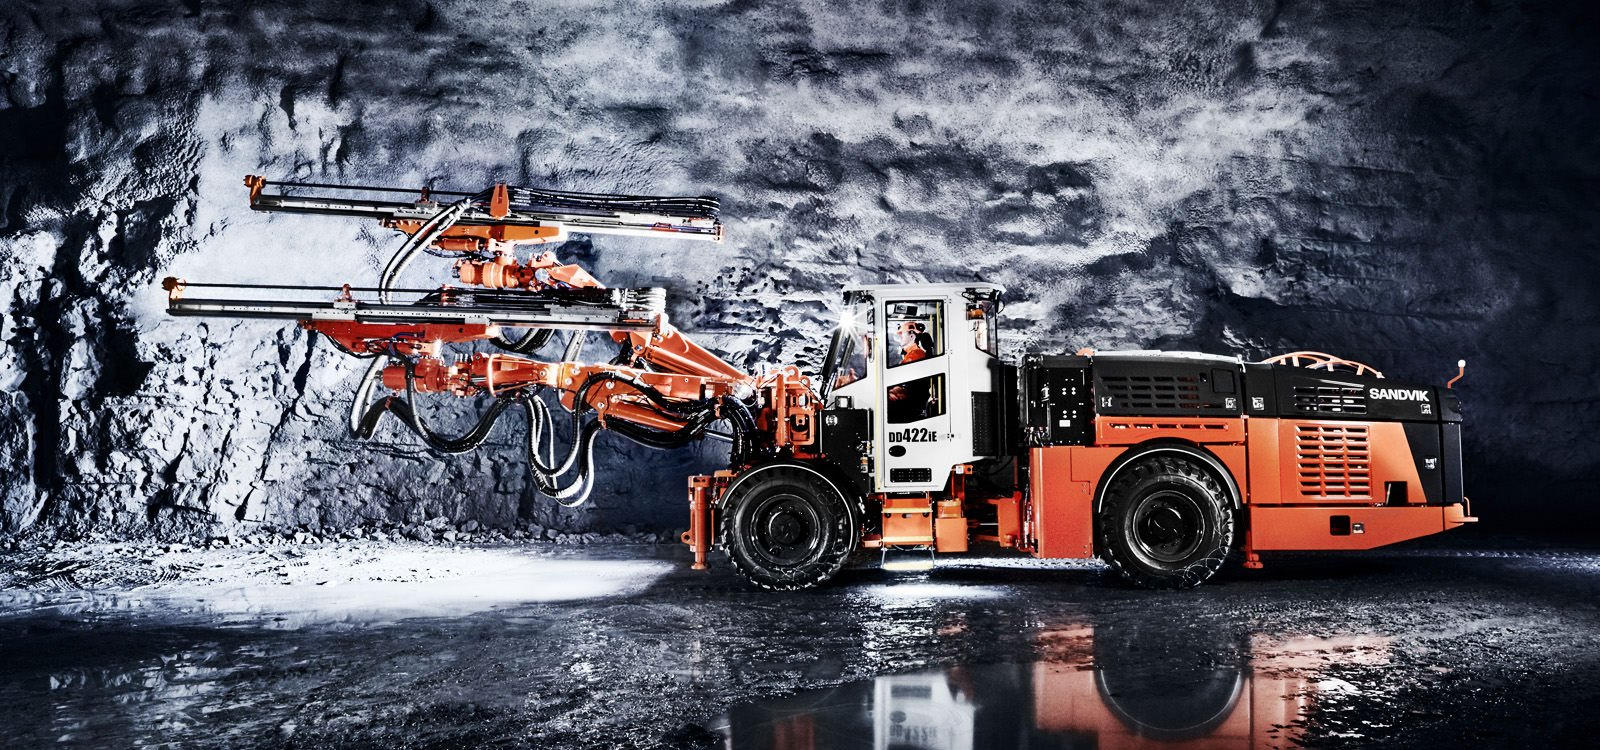 Downhill tramming does not consume power; rather it tops up the battery of the Sandvik DD4422iE